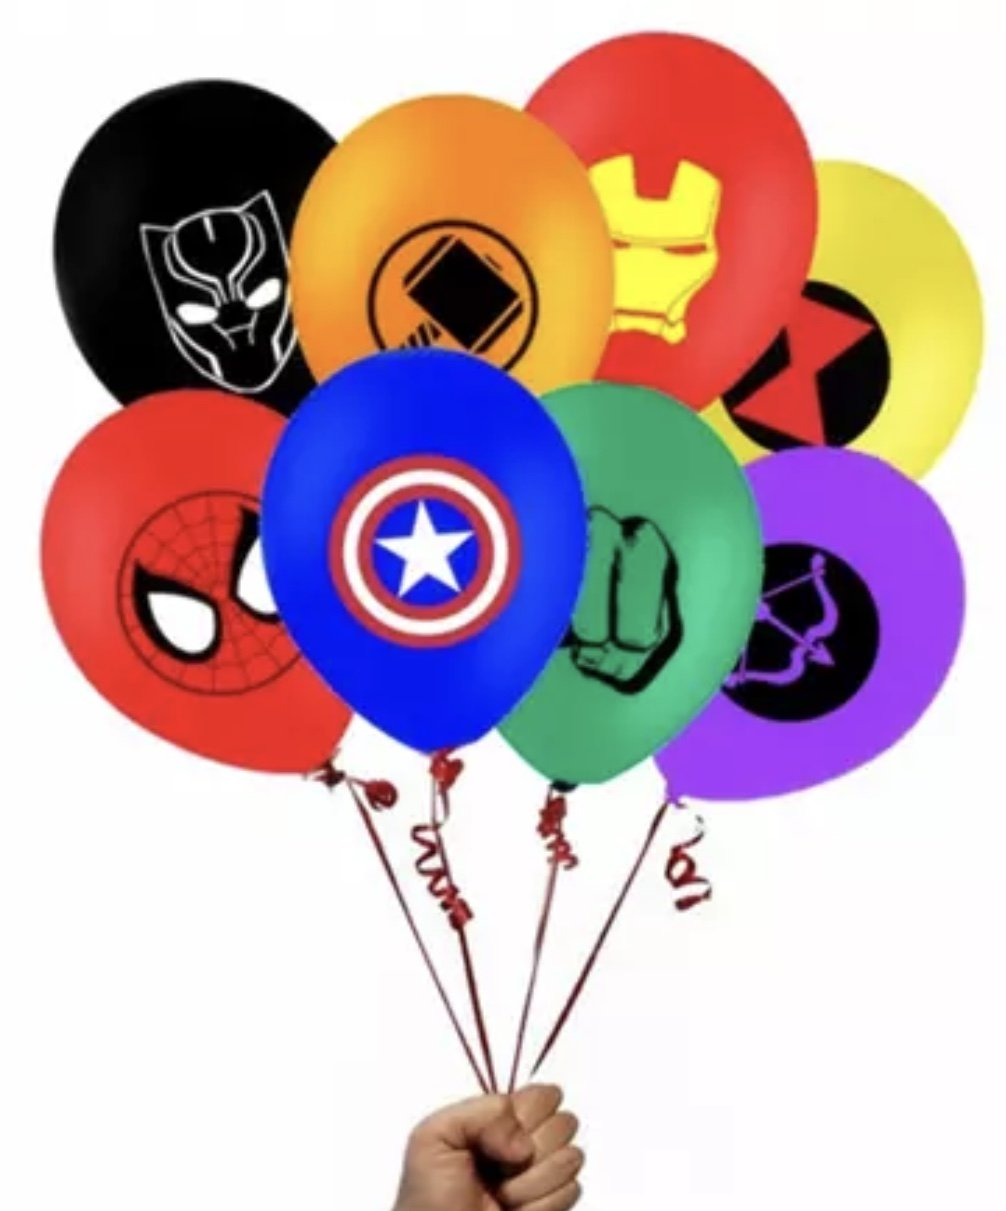 Marvel Superhero Balloon bundle 8 piece Latex Avengers 12 inch